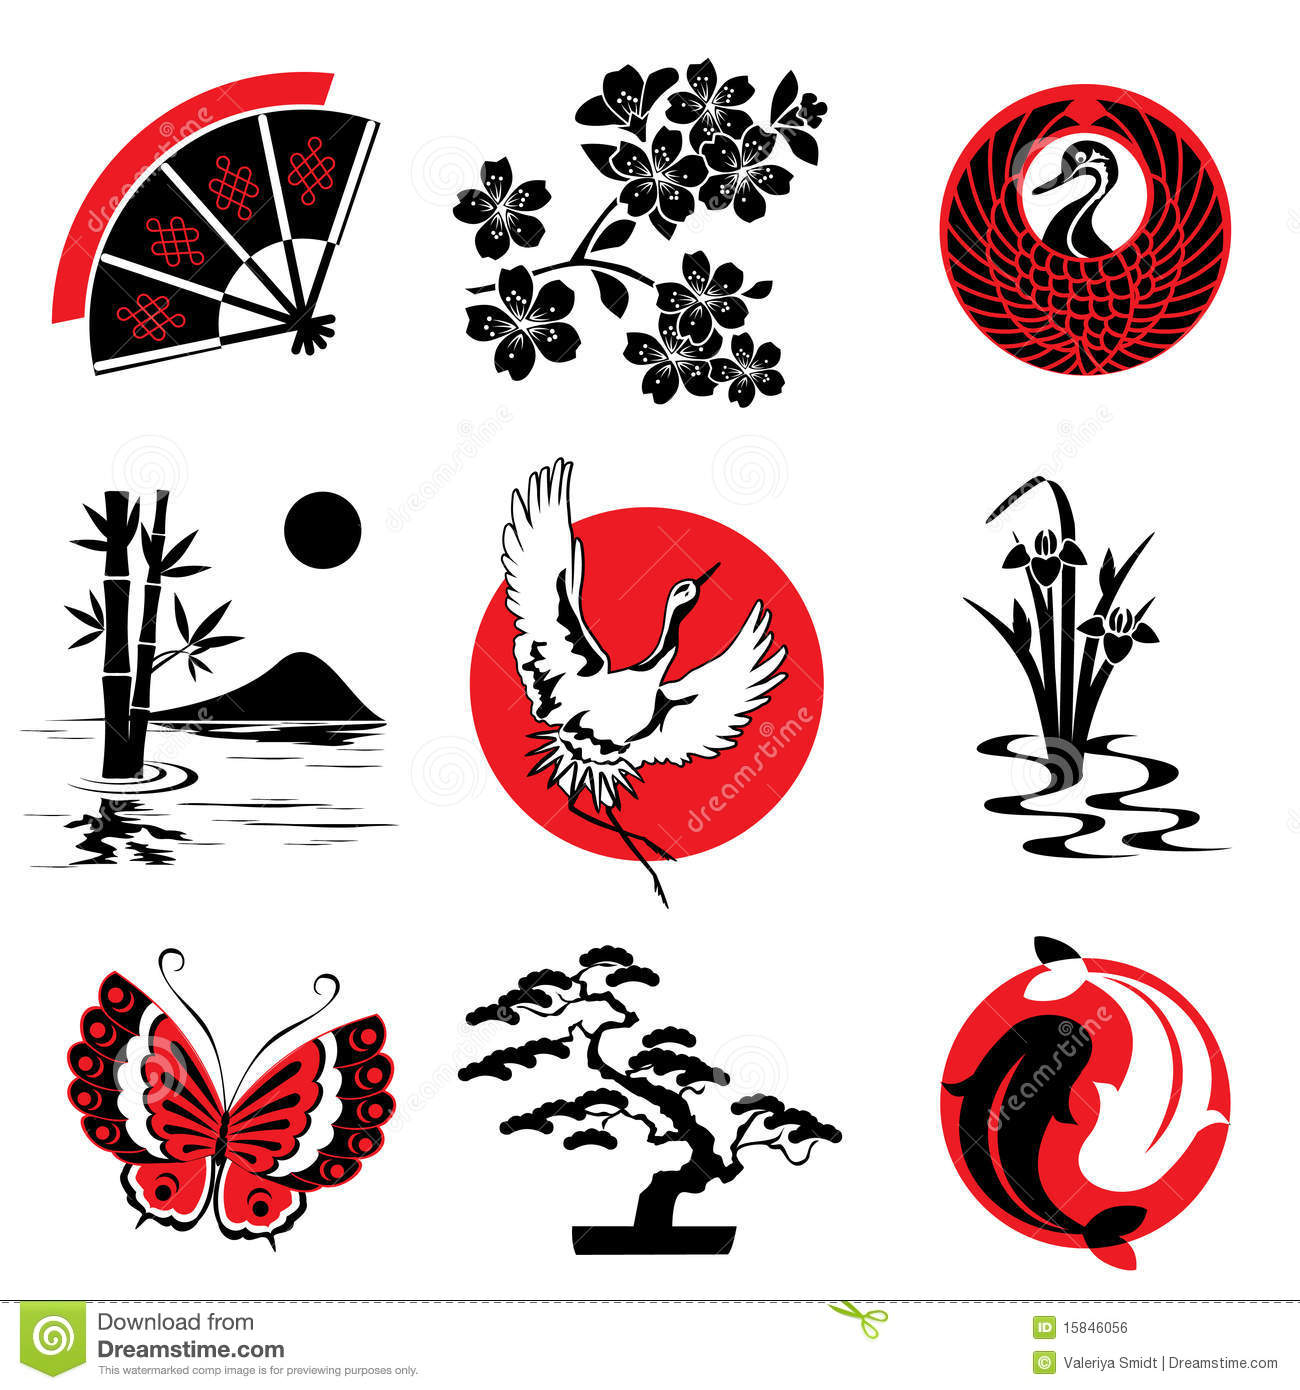 japanese design royalty free stock image image 15846056 martial arts clipart joint locks martial arts clip art free download